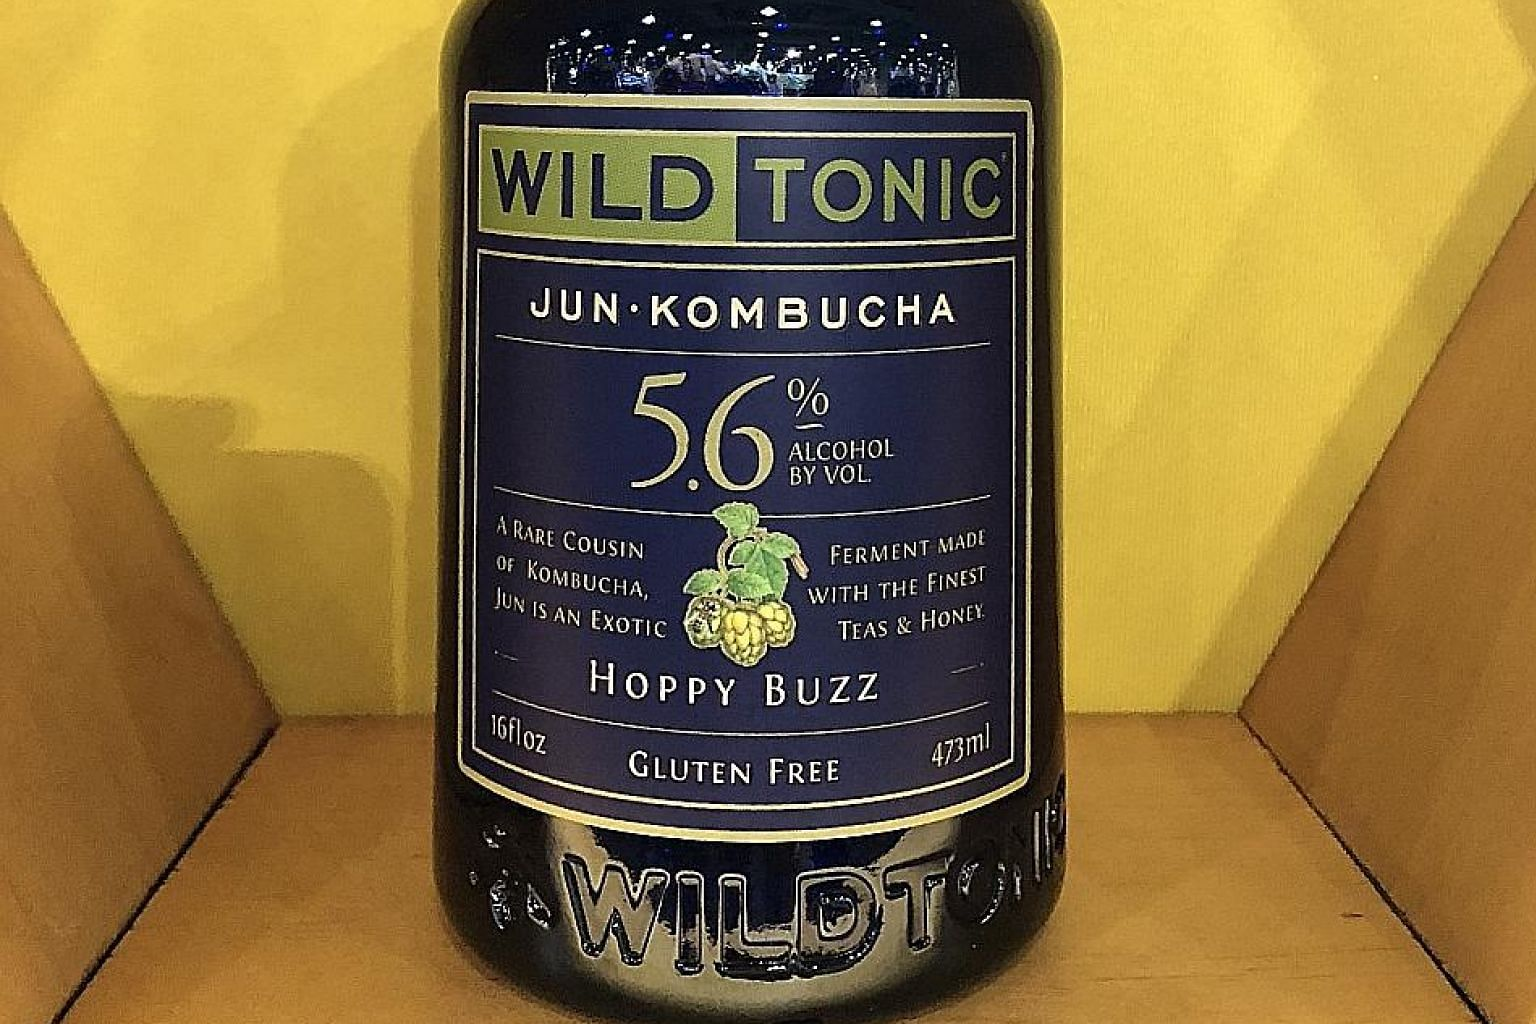 A new kombucha product at New York's Fancy Foods Show earlier this year.